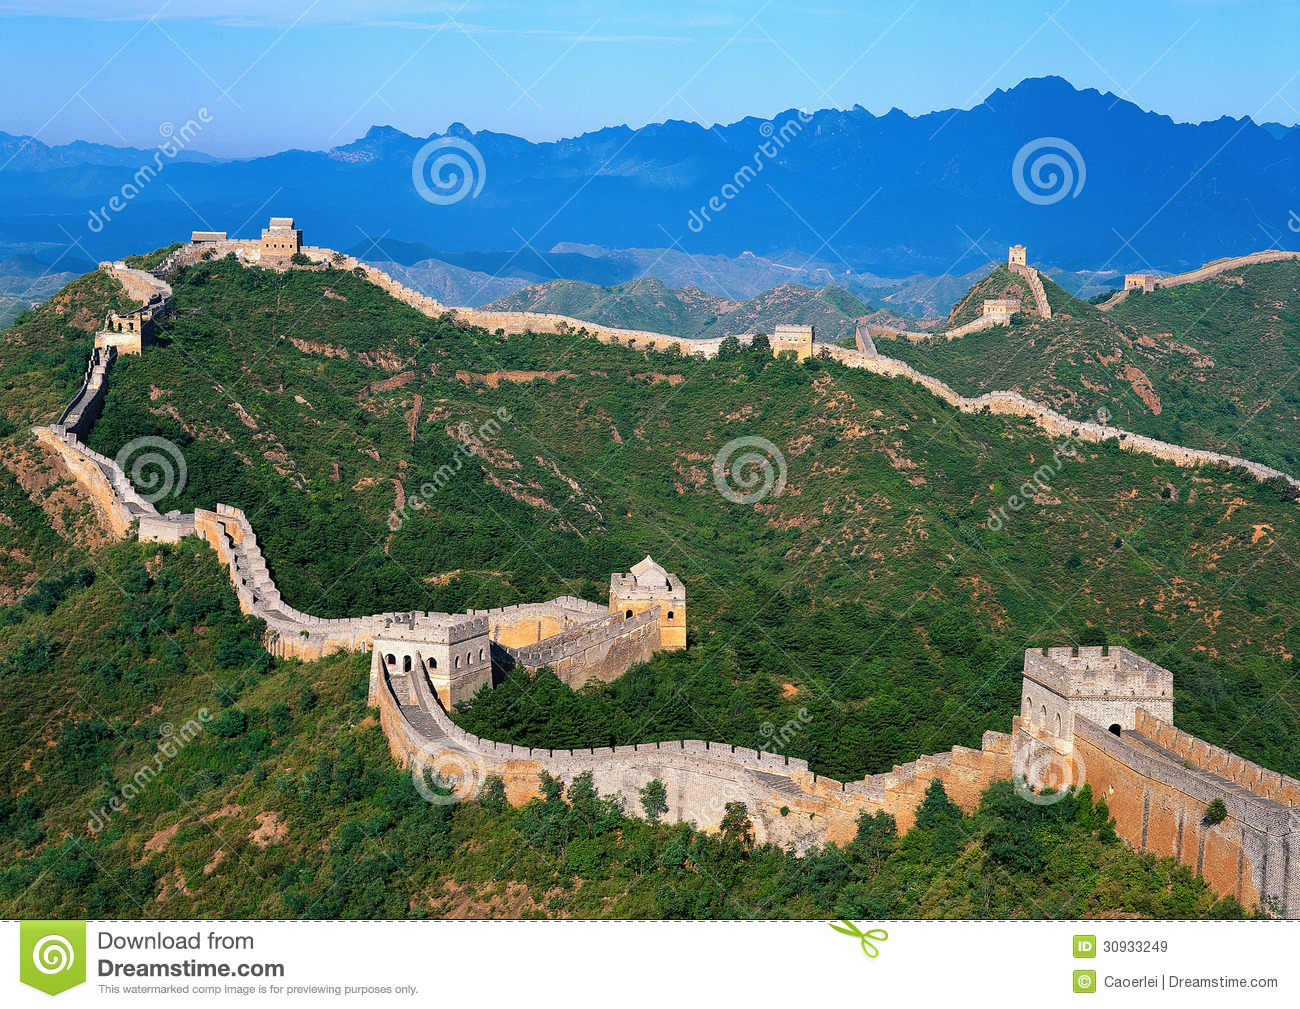 Great wall of china stock image image of architecture for A grande muralha da china